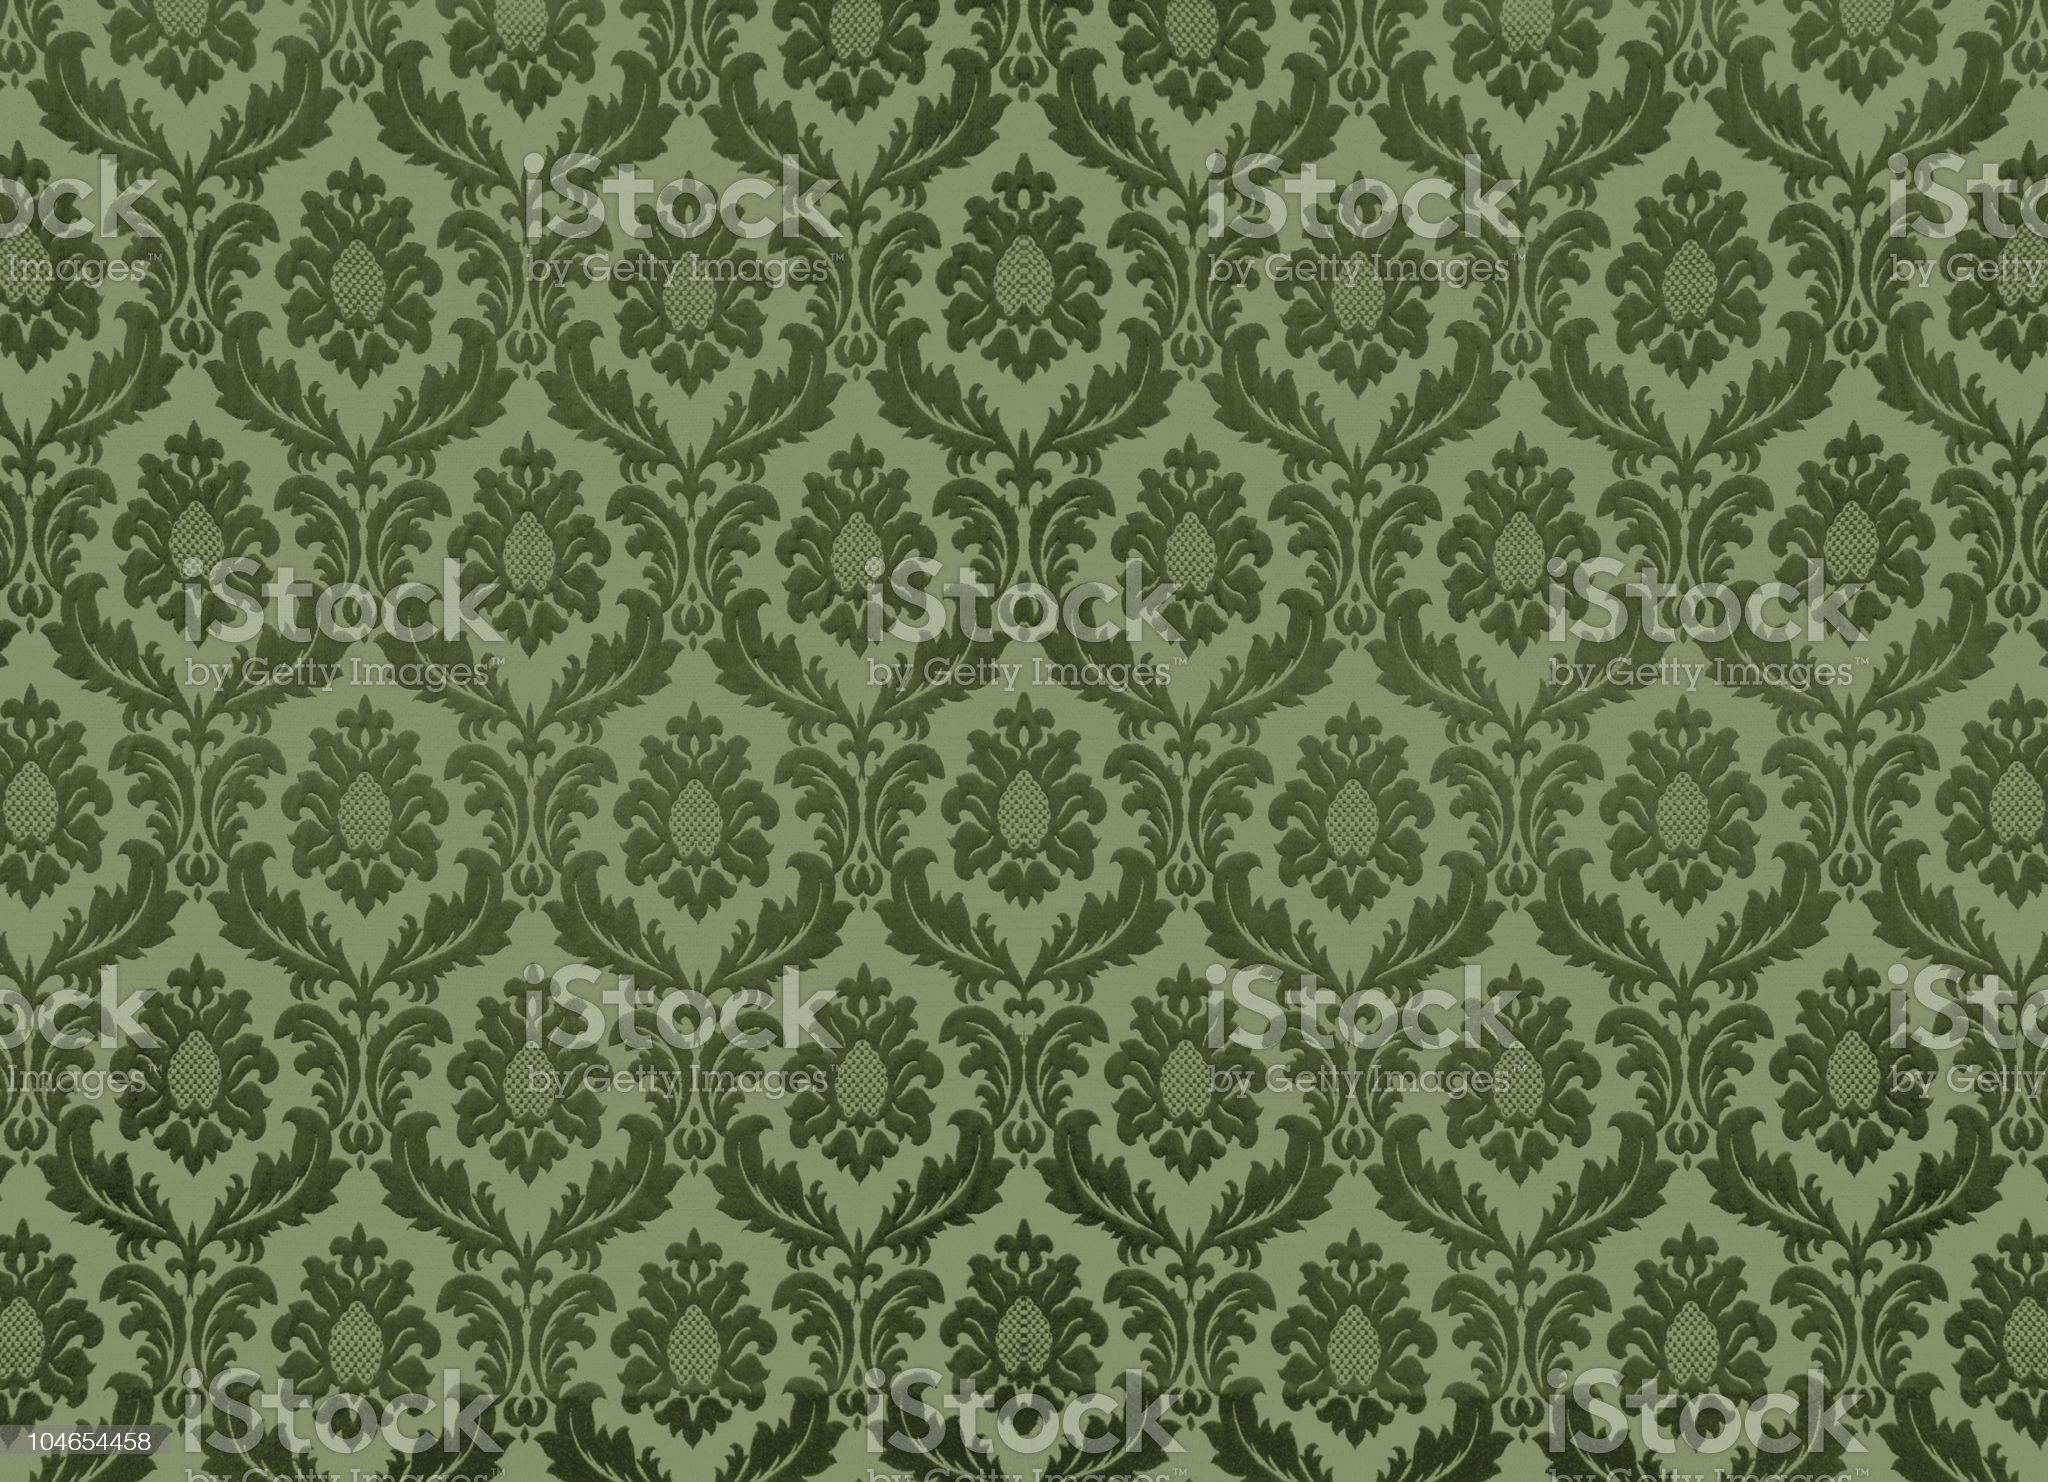 Green retro pattern wallpaper background royalty-free stock photo